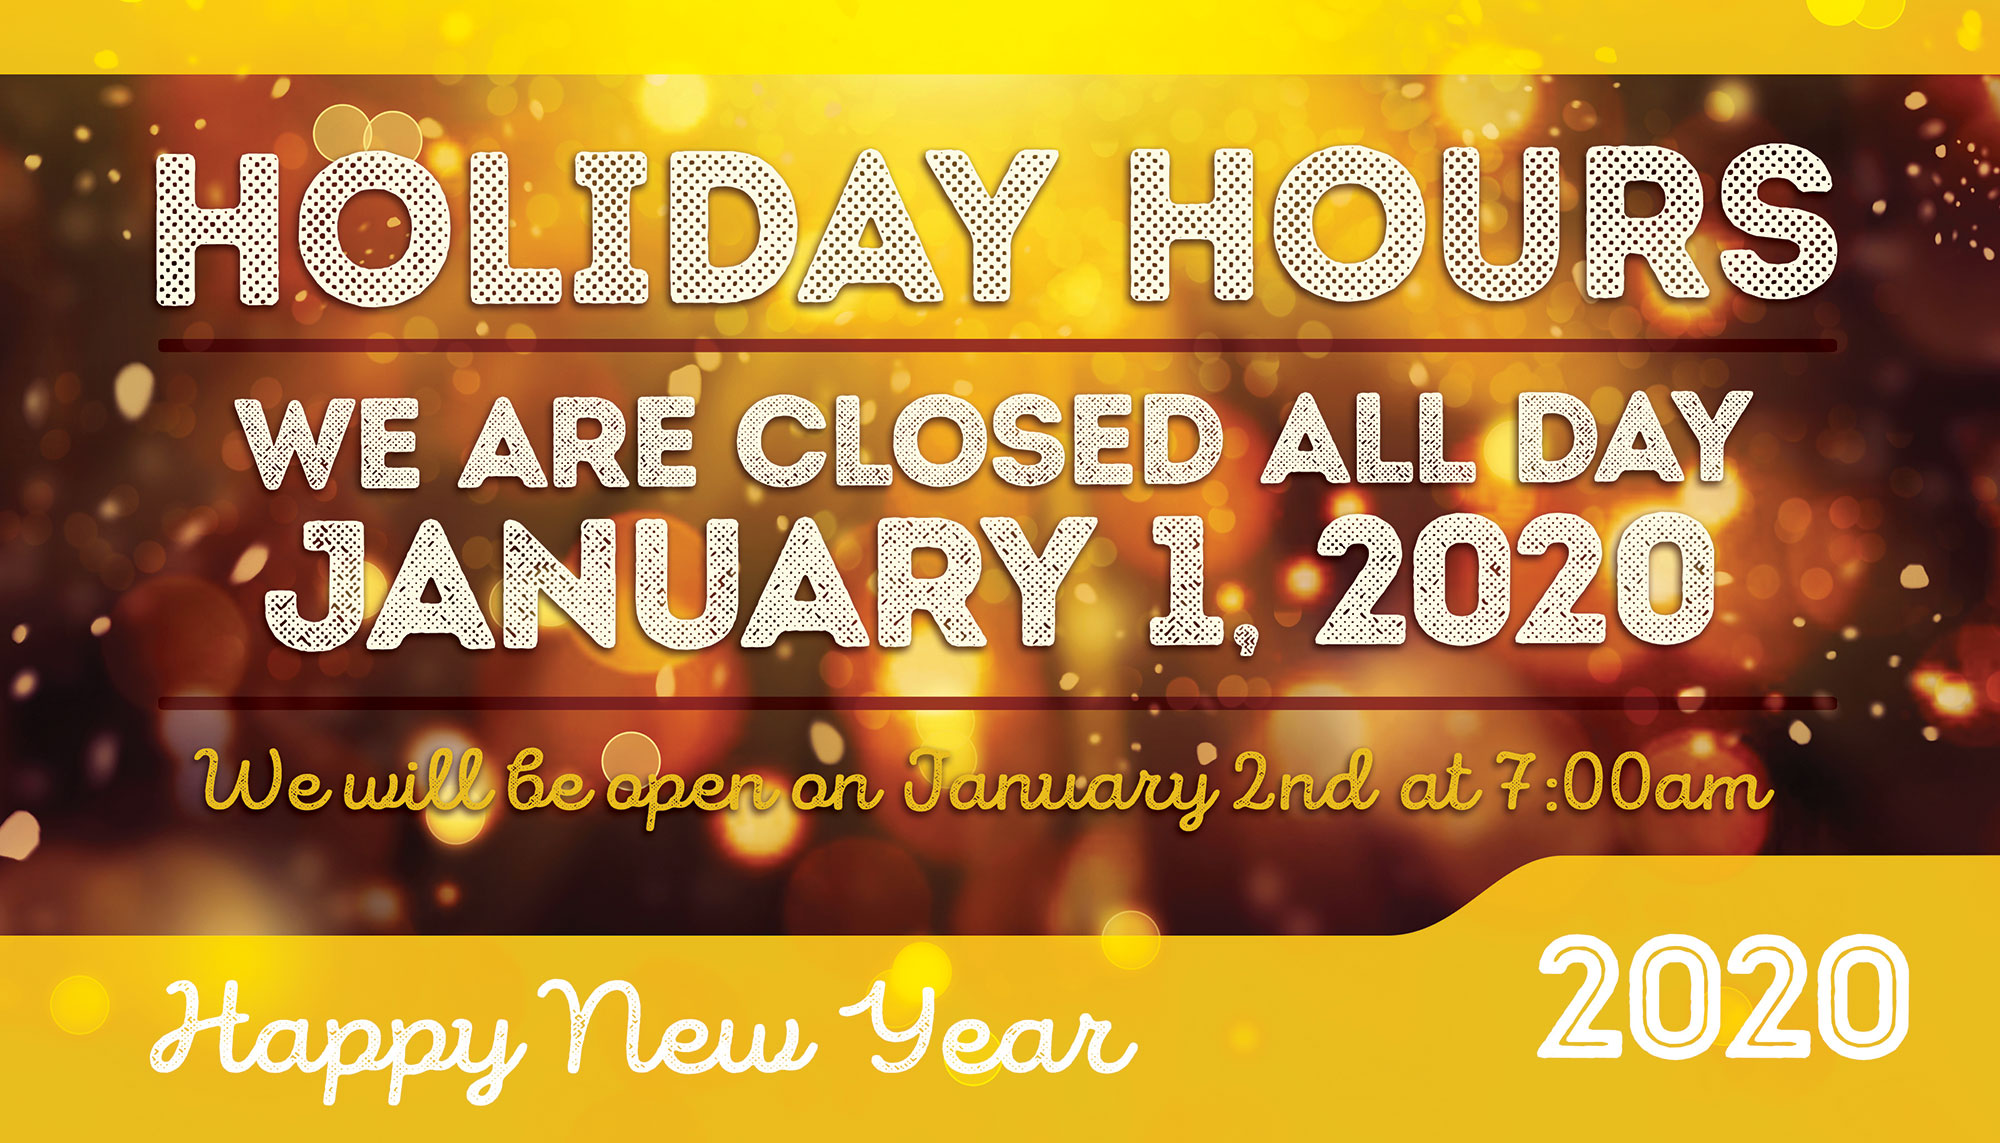 New Years auto repair shop hours